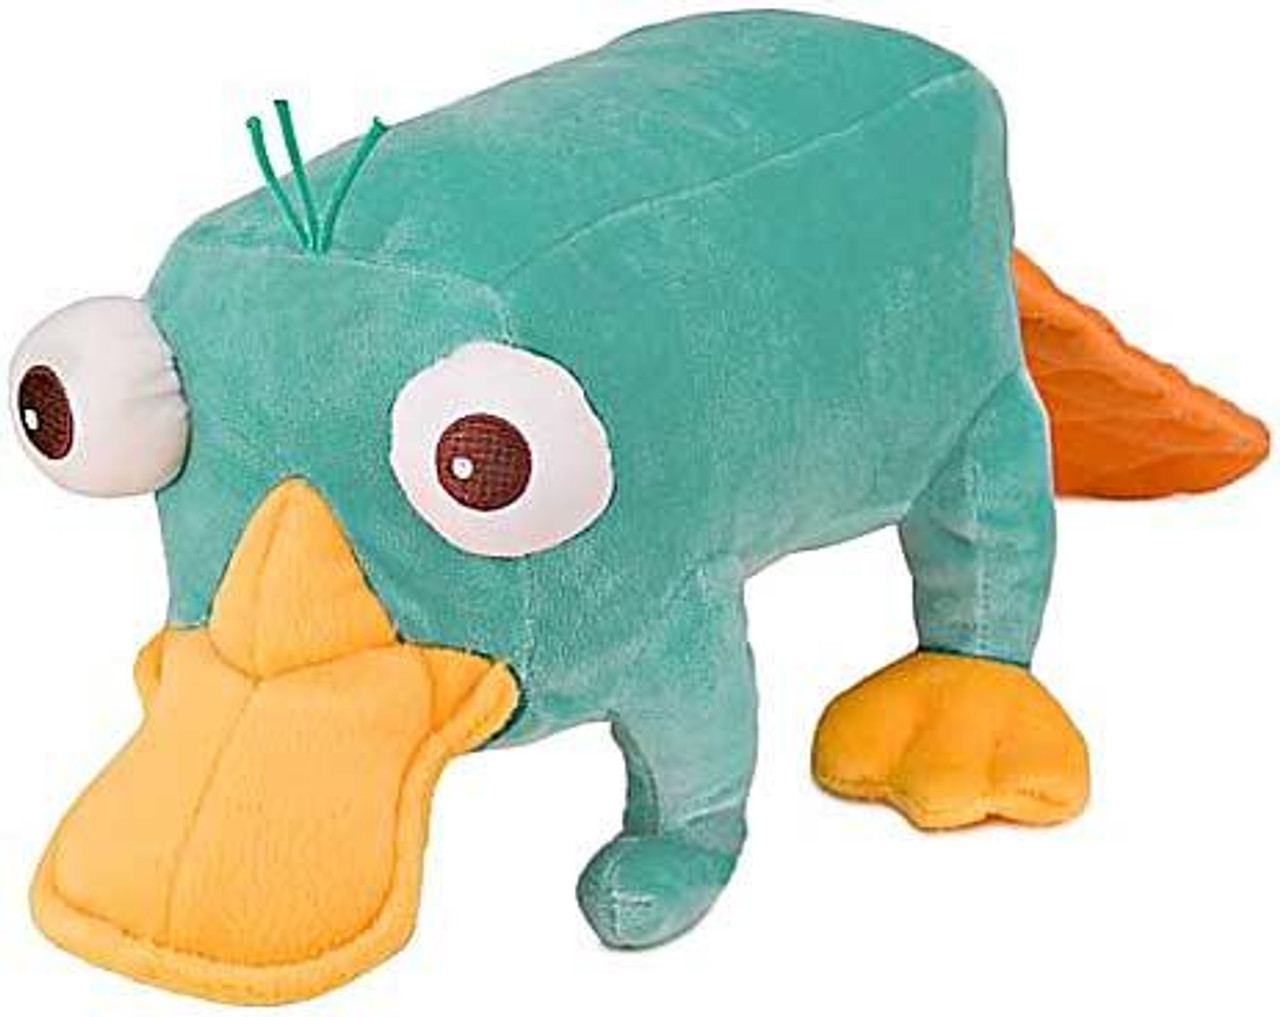 Disney Phineas and Ferb Perry the Platypus 10-Inch Plush